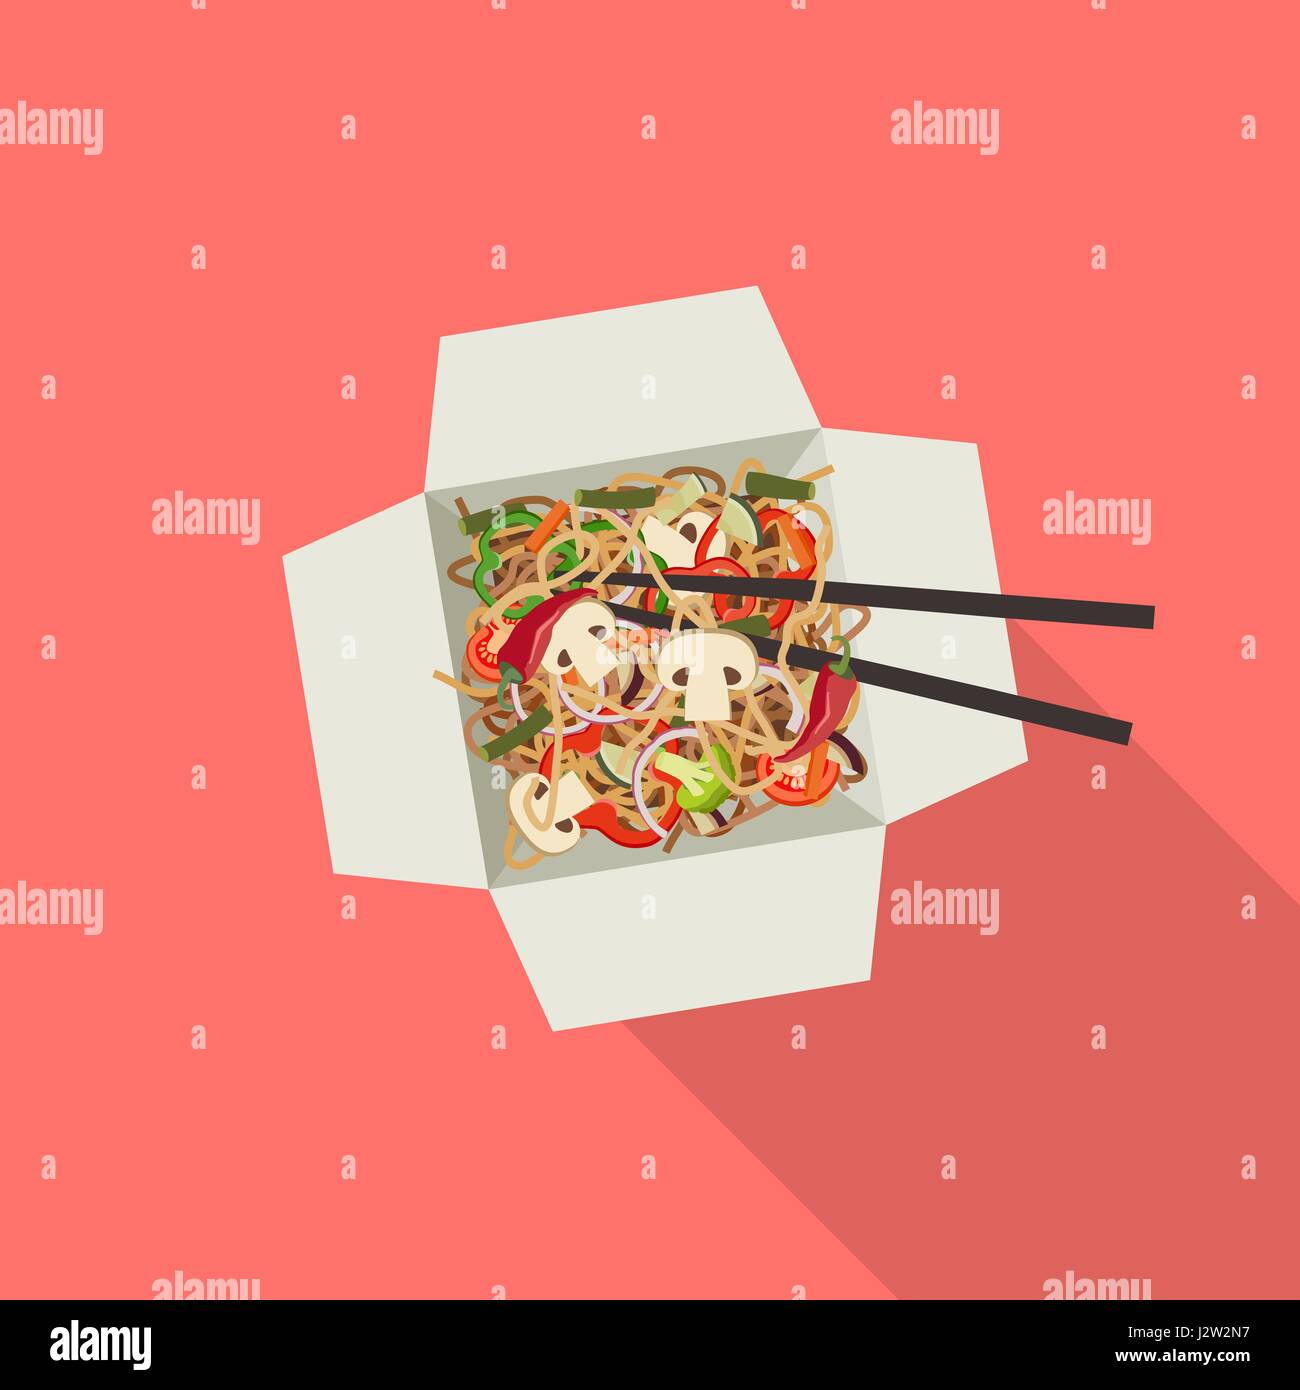 Chinese noodles in box. - Stock Vector